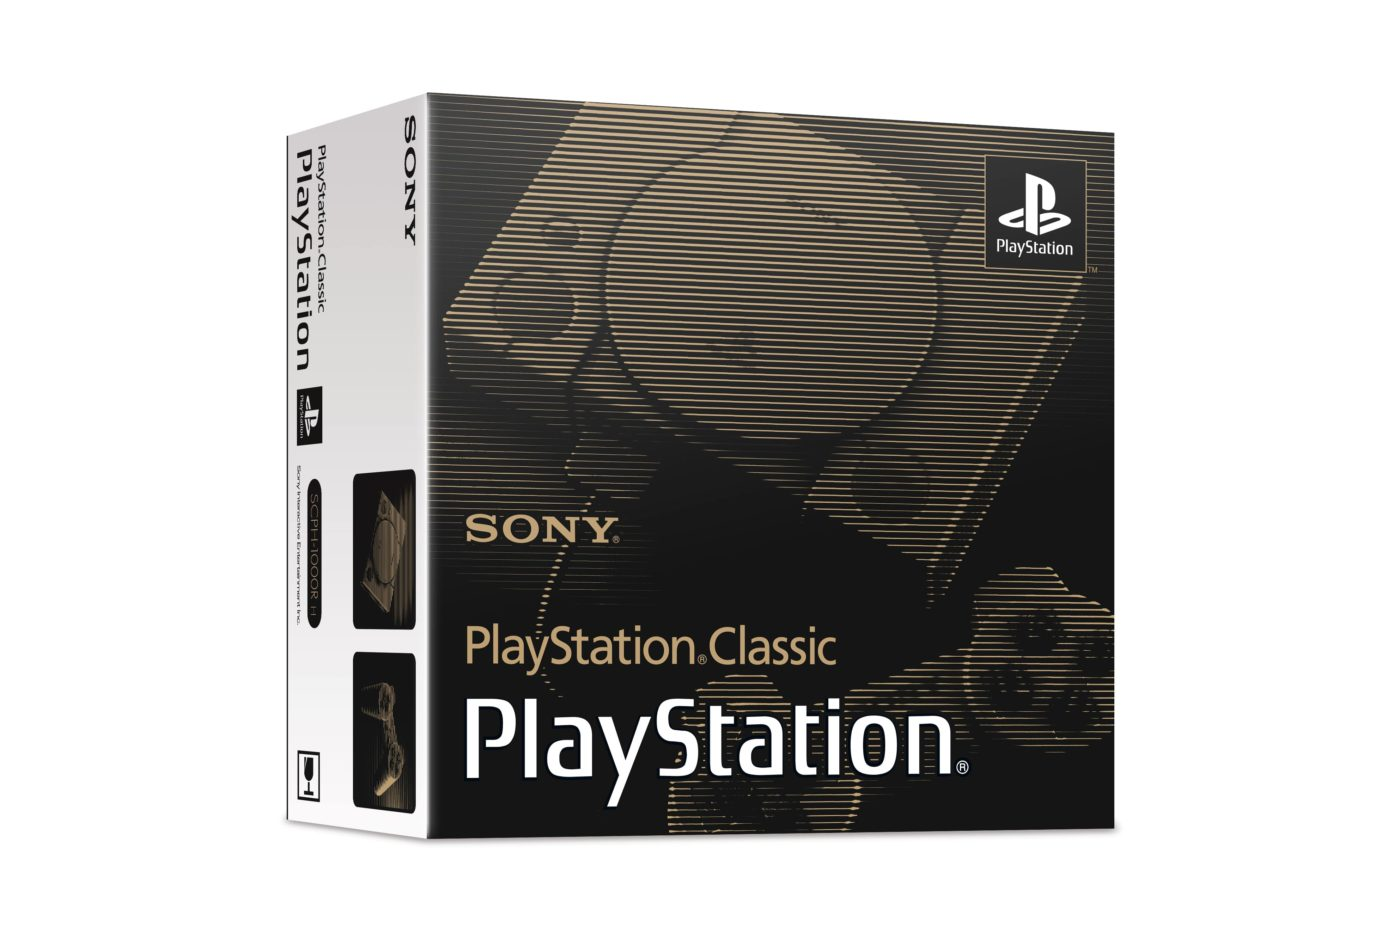 Sony Announces PlayStation Classic, Release Date, Official Specs and More Detailed